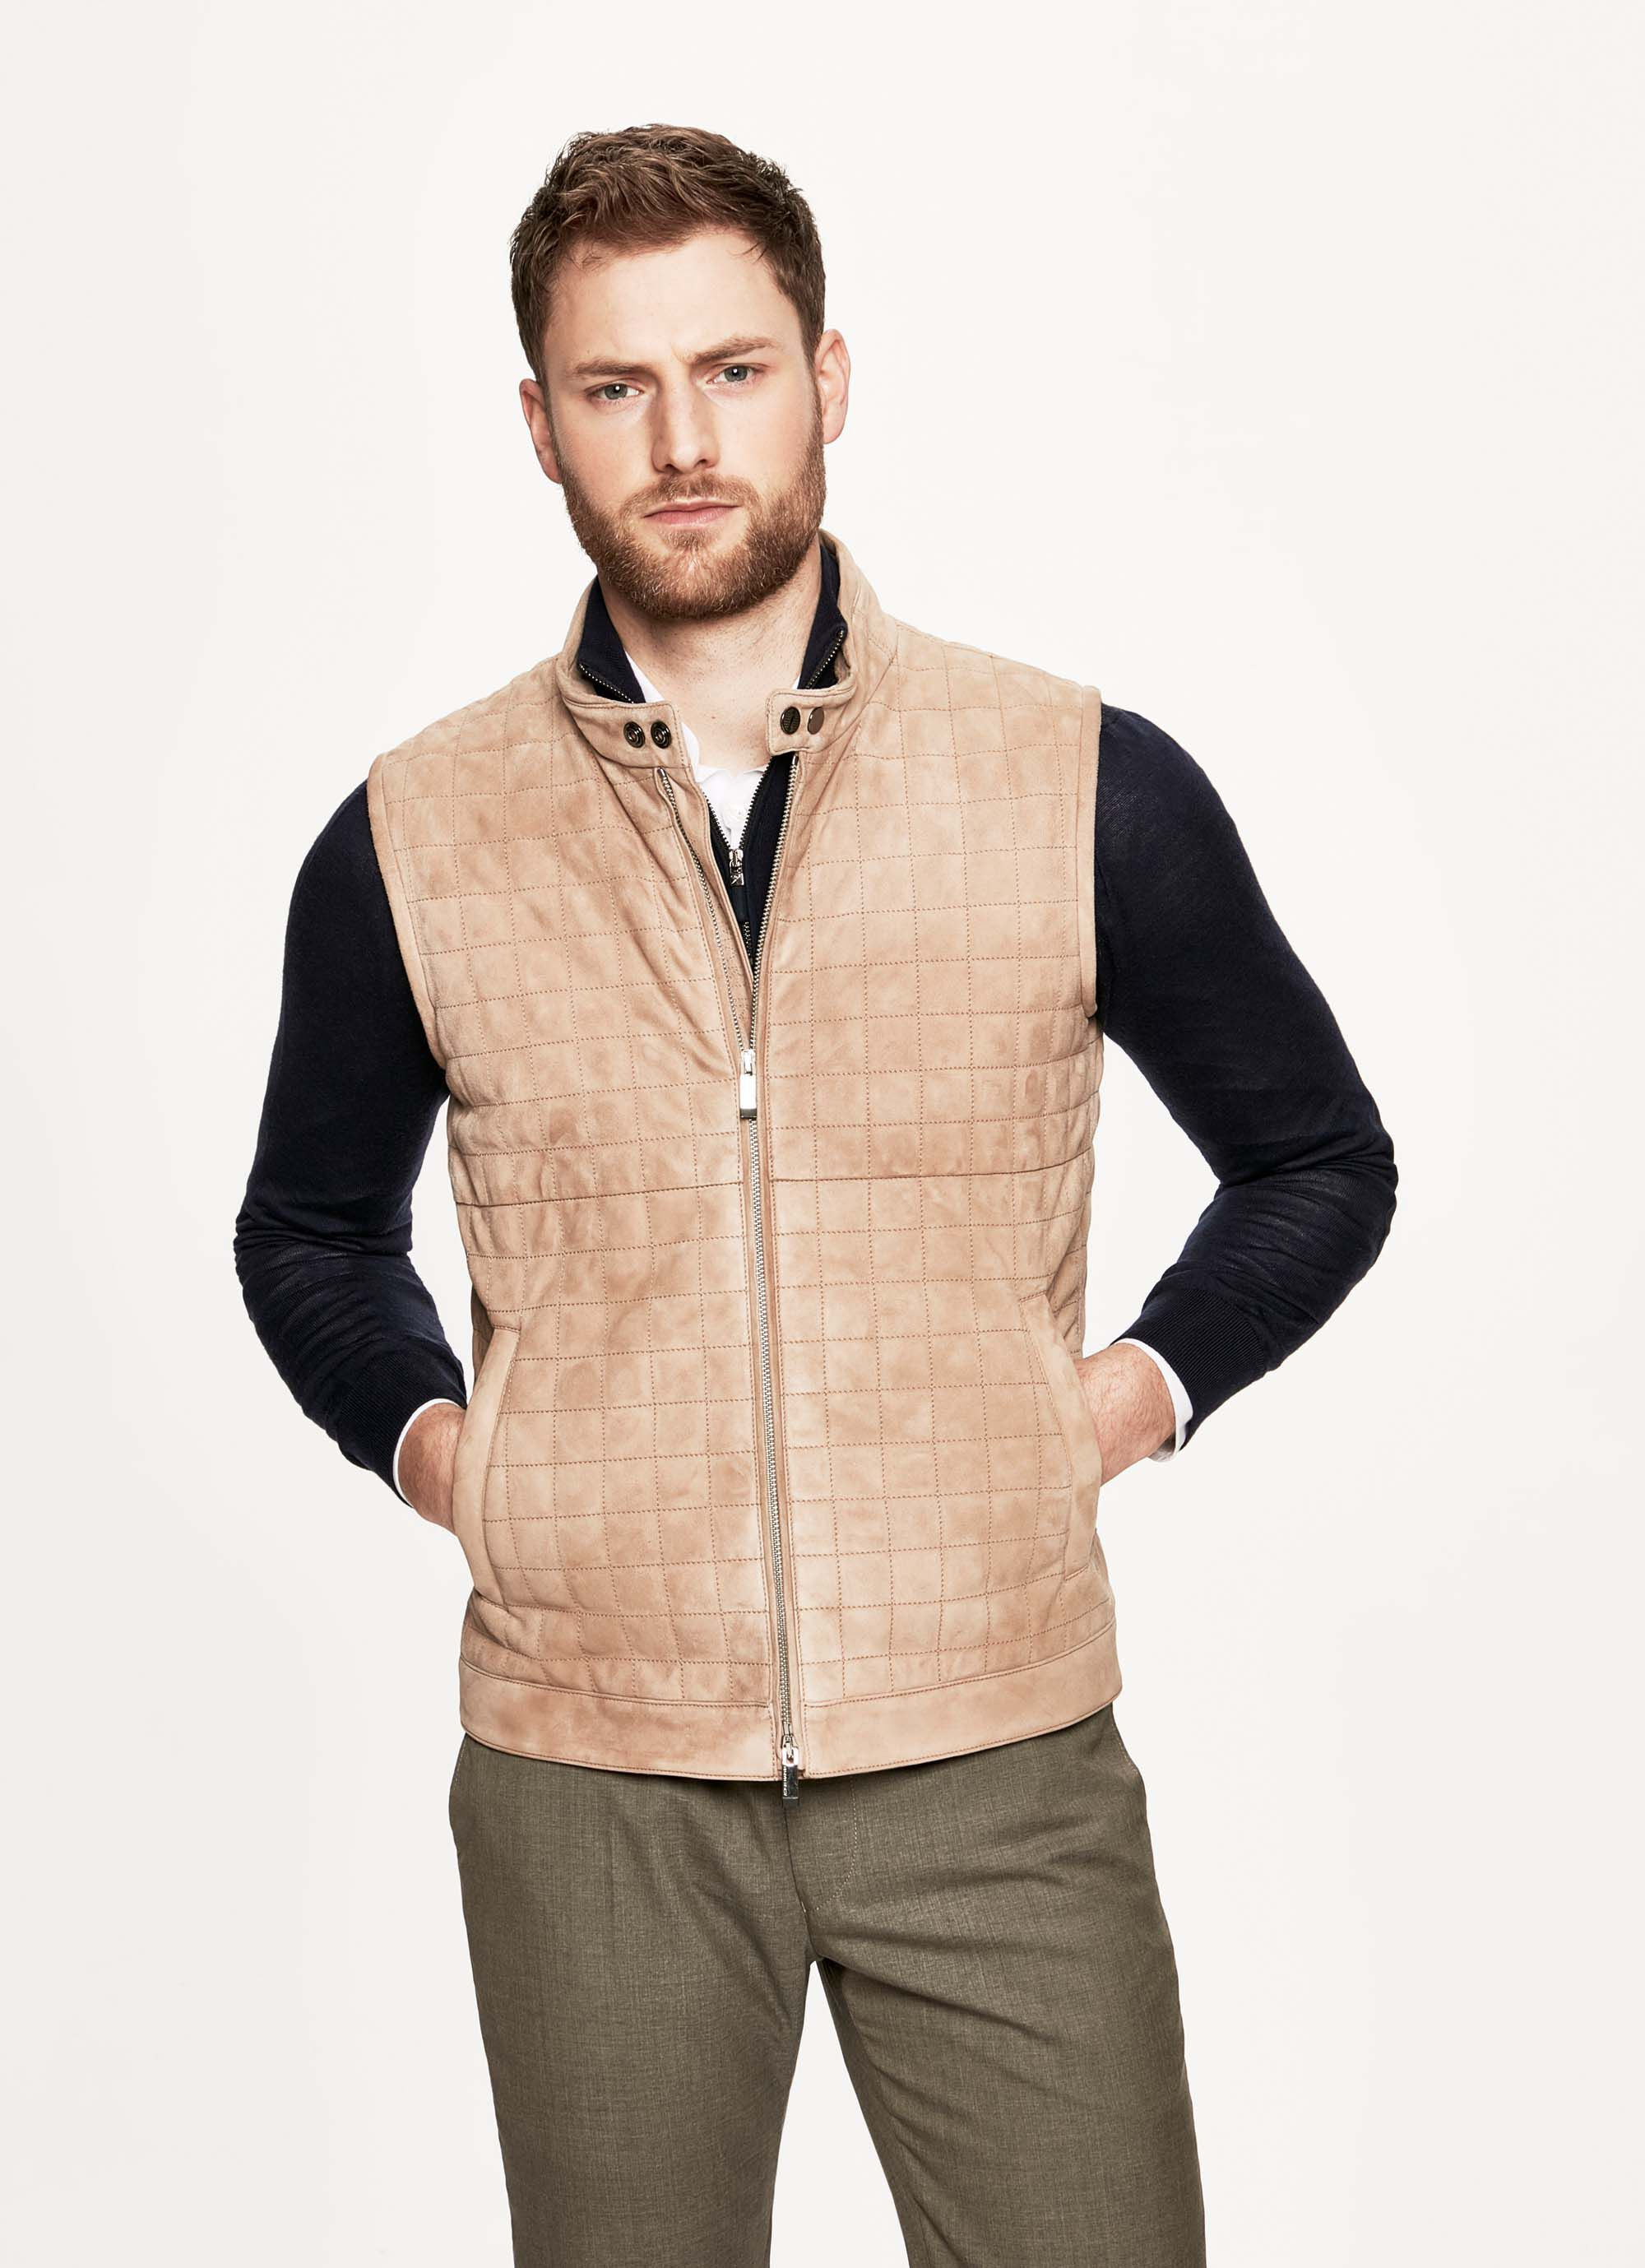 aston martin by hackett men's box-quilted suede gilet | 3x-large | sand